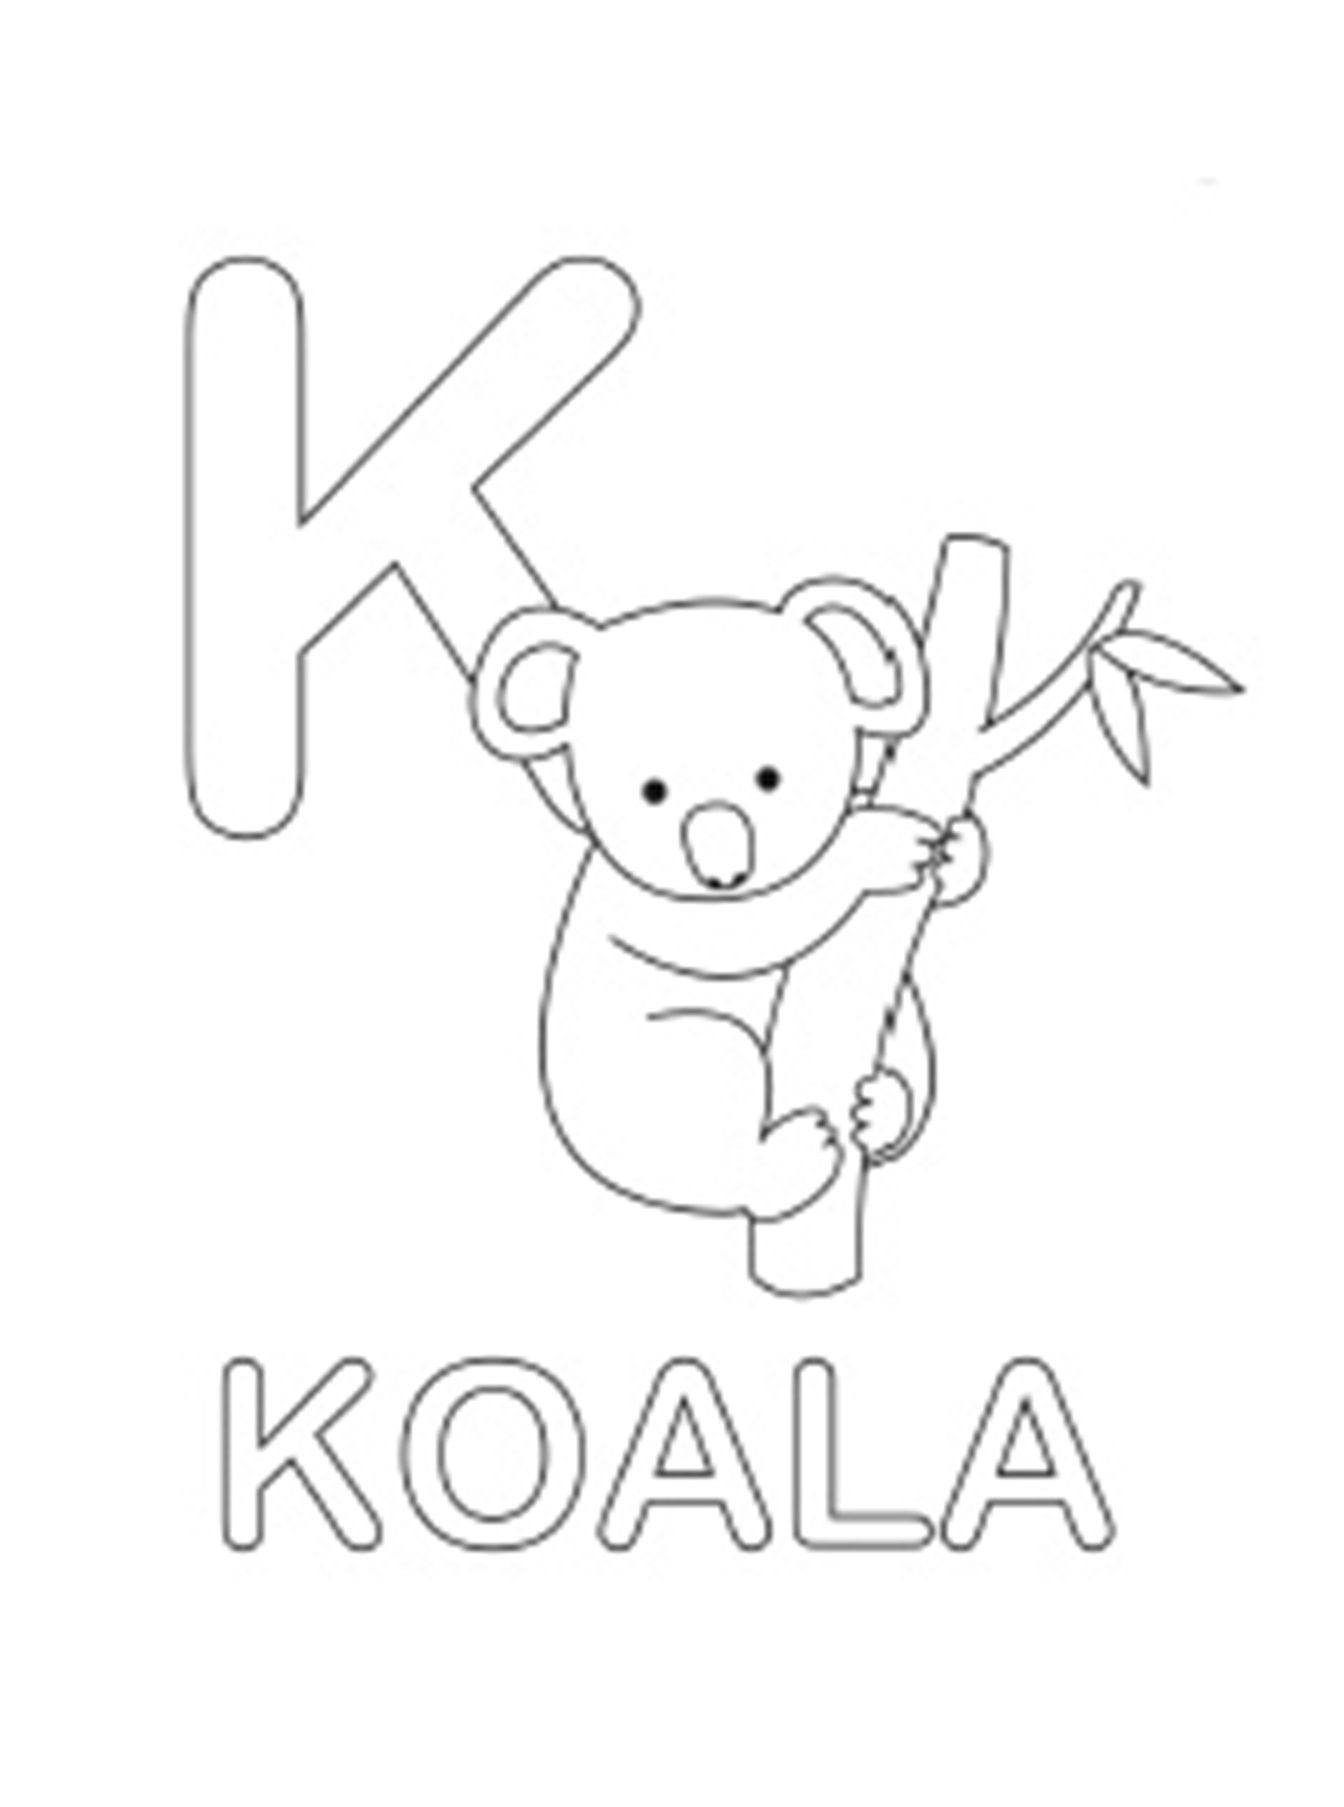 Koala Alphabet Coloring Pages Free Koala Party